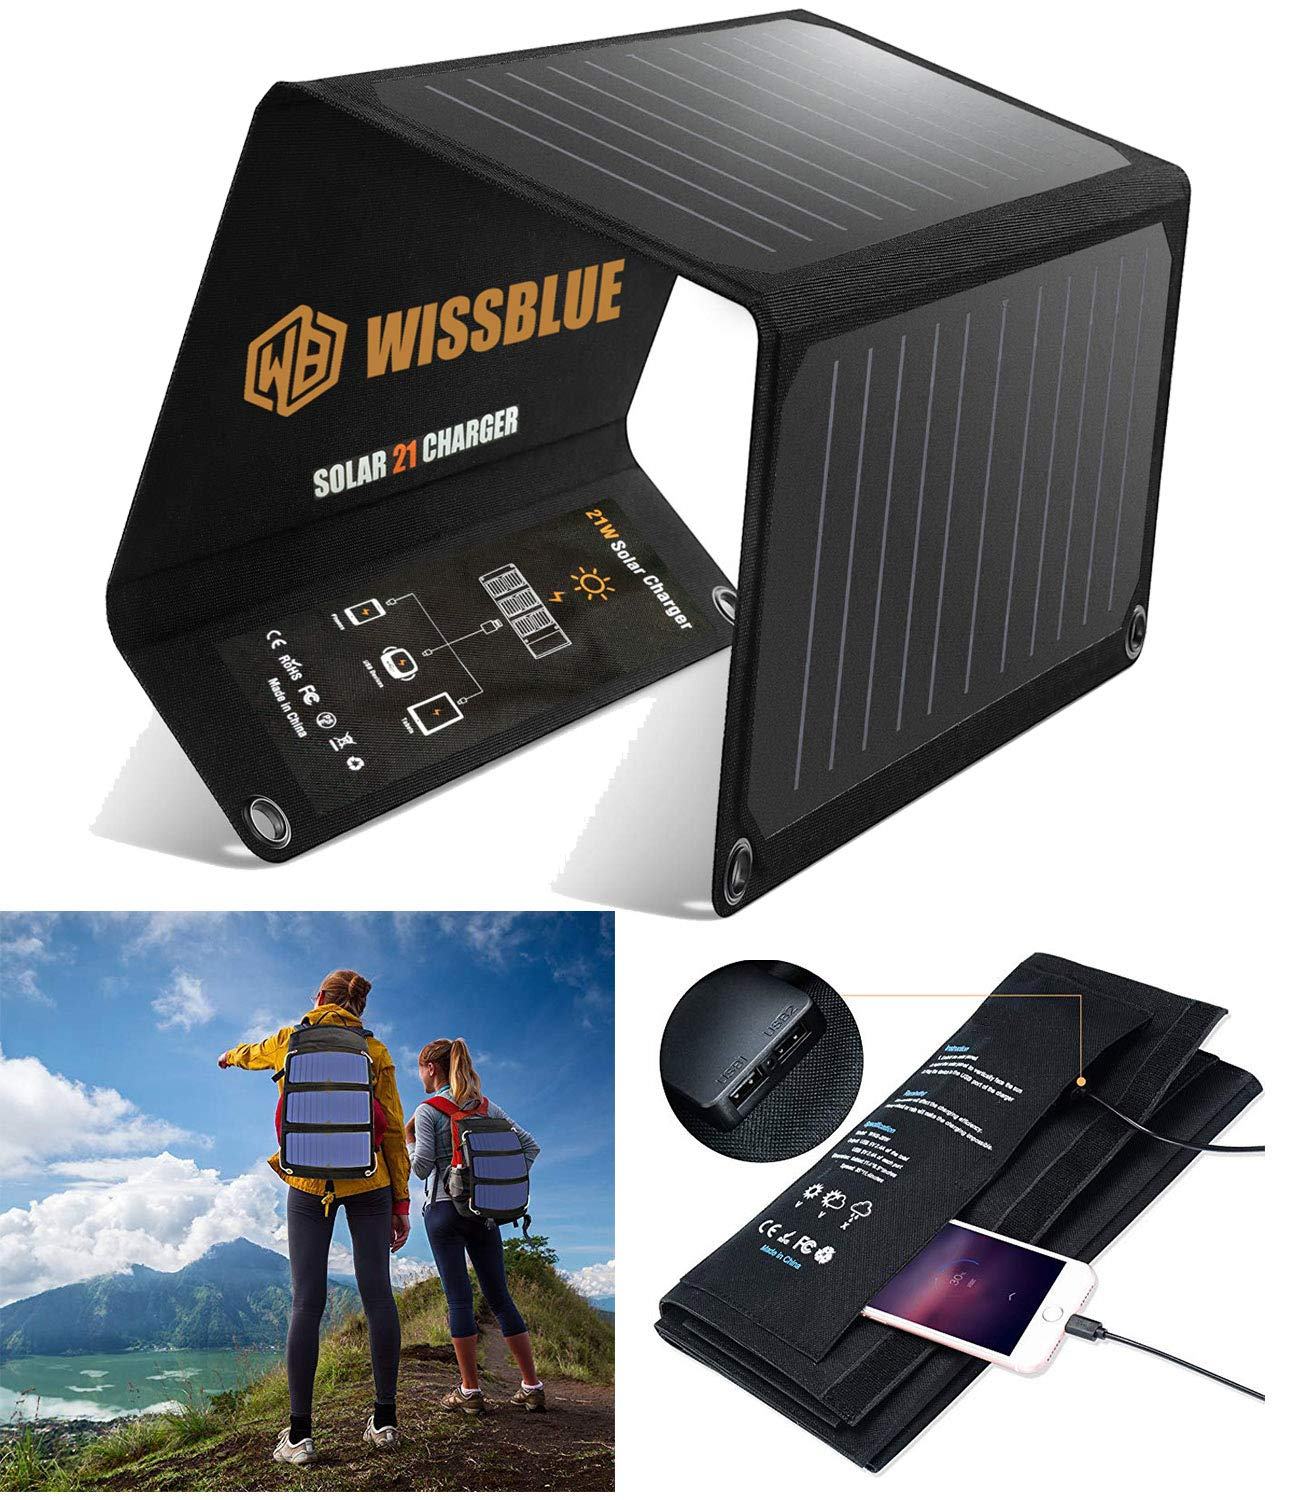 WISSBLUE Solar Panel Charger 21W, Dual USB 4.2A Fast Solar Charger, Portable Camping Travel Charger,Hiking,Hurricane, Emergency Backup. for All 5V Devices, iPhone iPad Samsung Kindle etc.